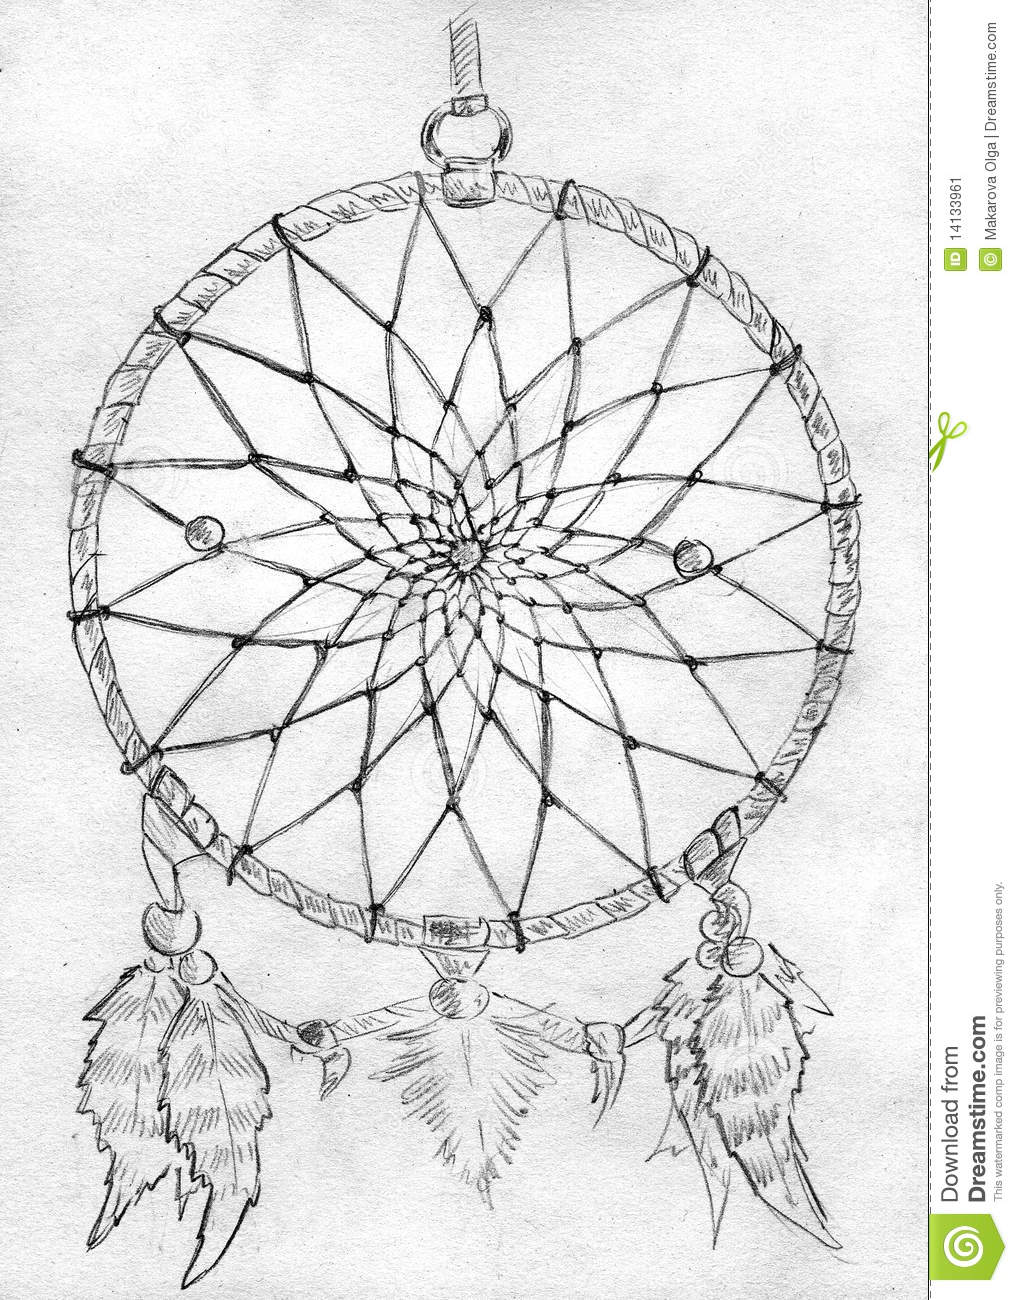 Dreamcatcher Sketch Stock Image Image 14133961